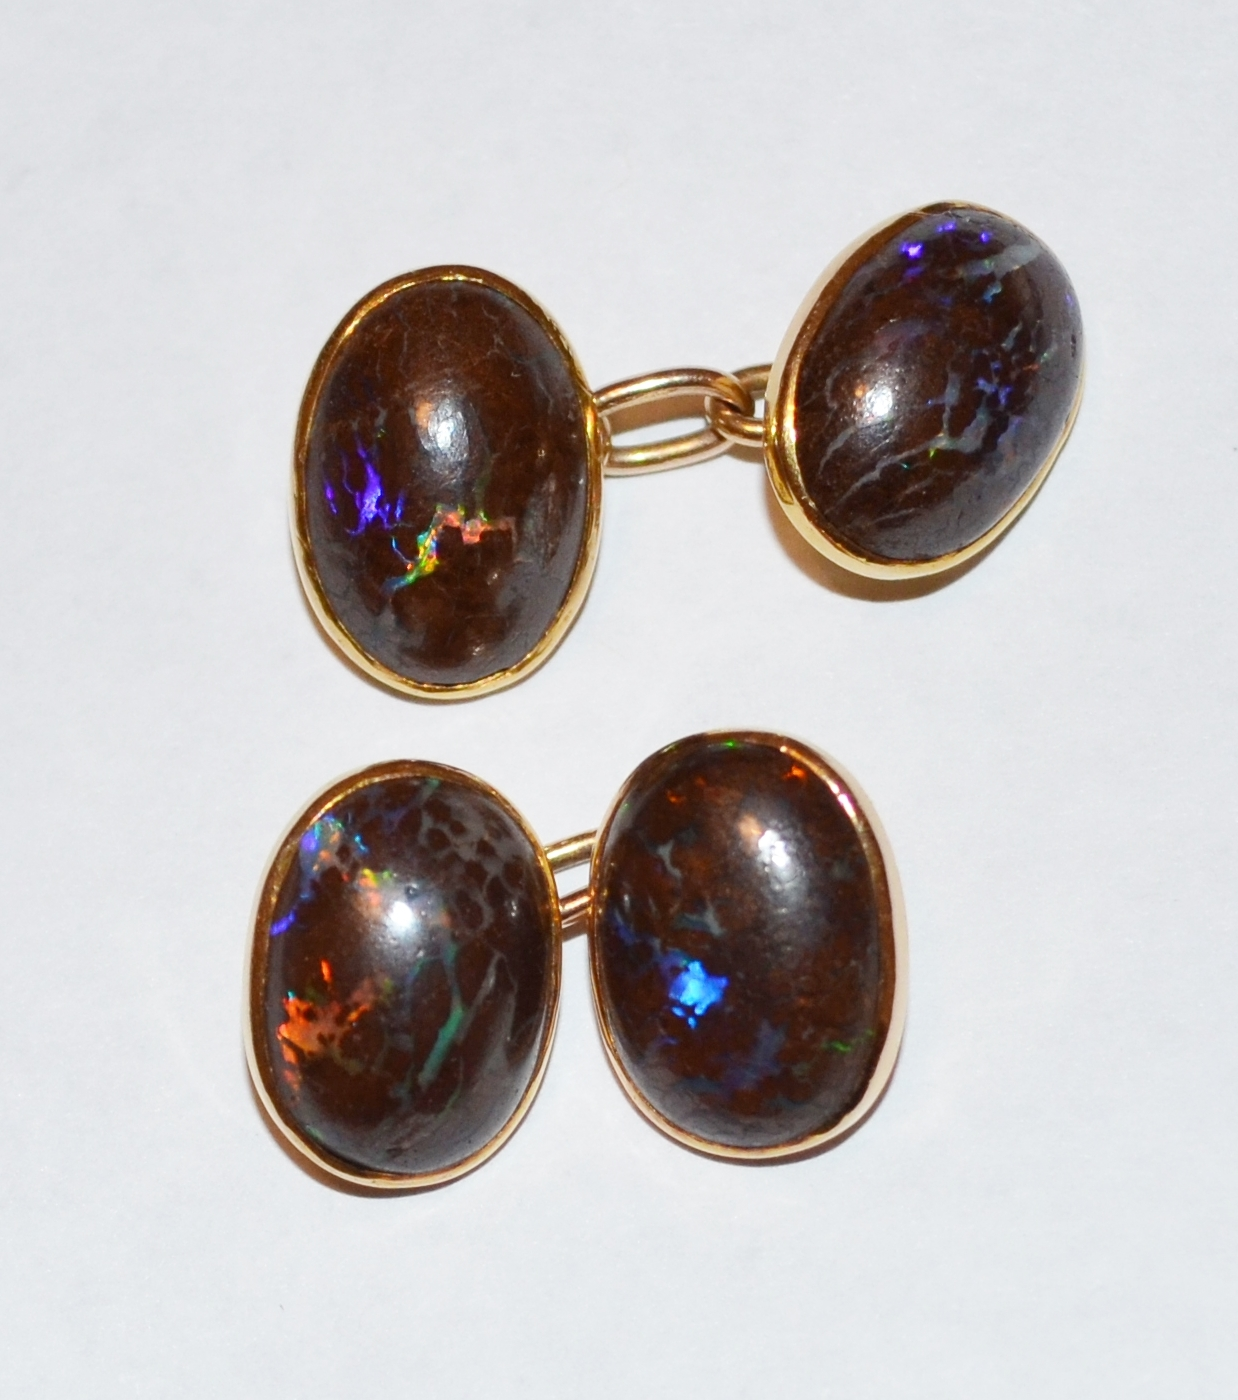 BOULDER OPAL & GOLD CUFF LINKS